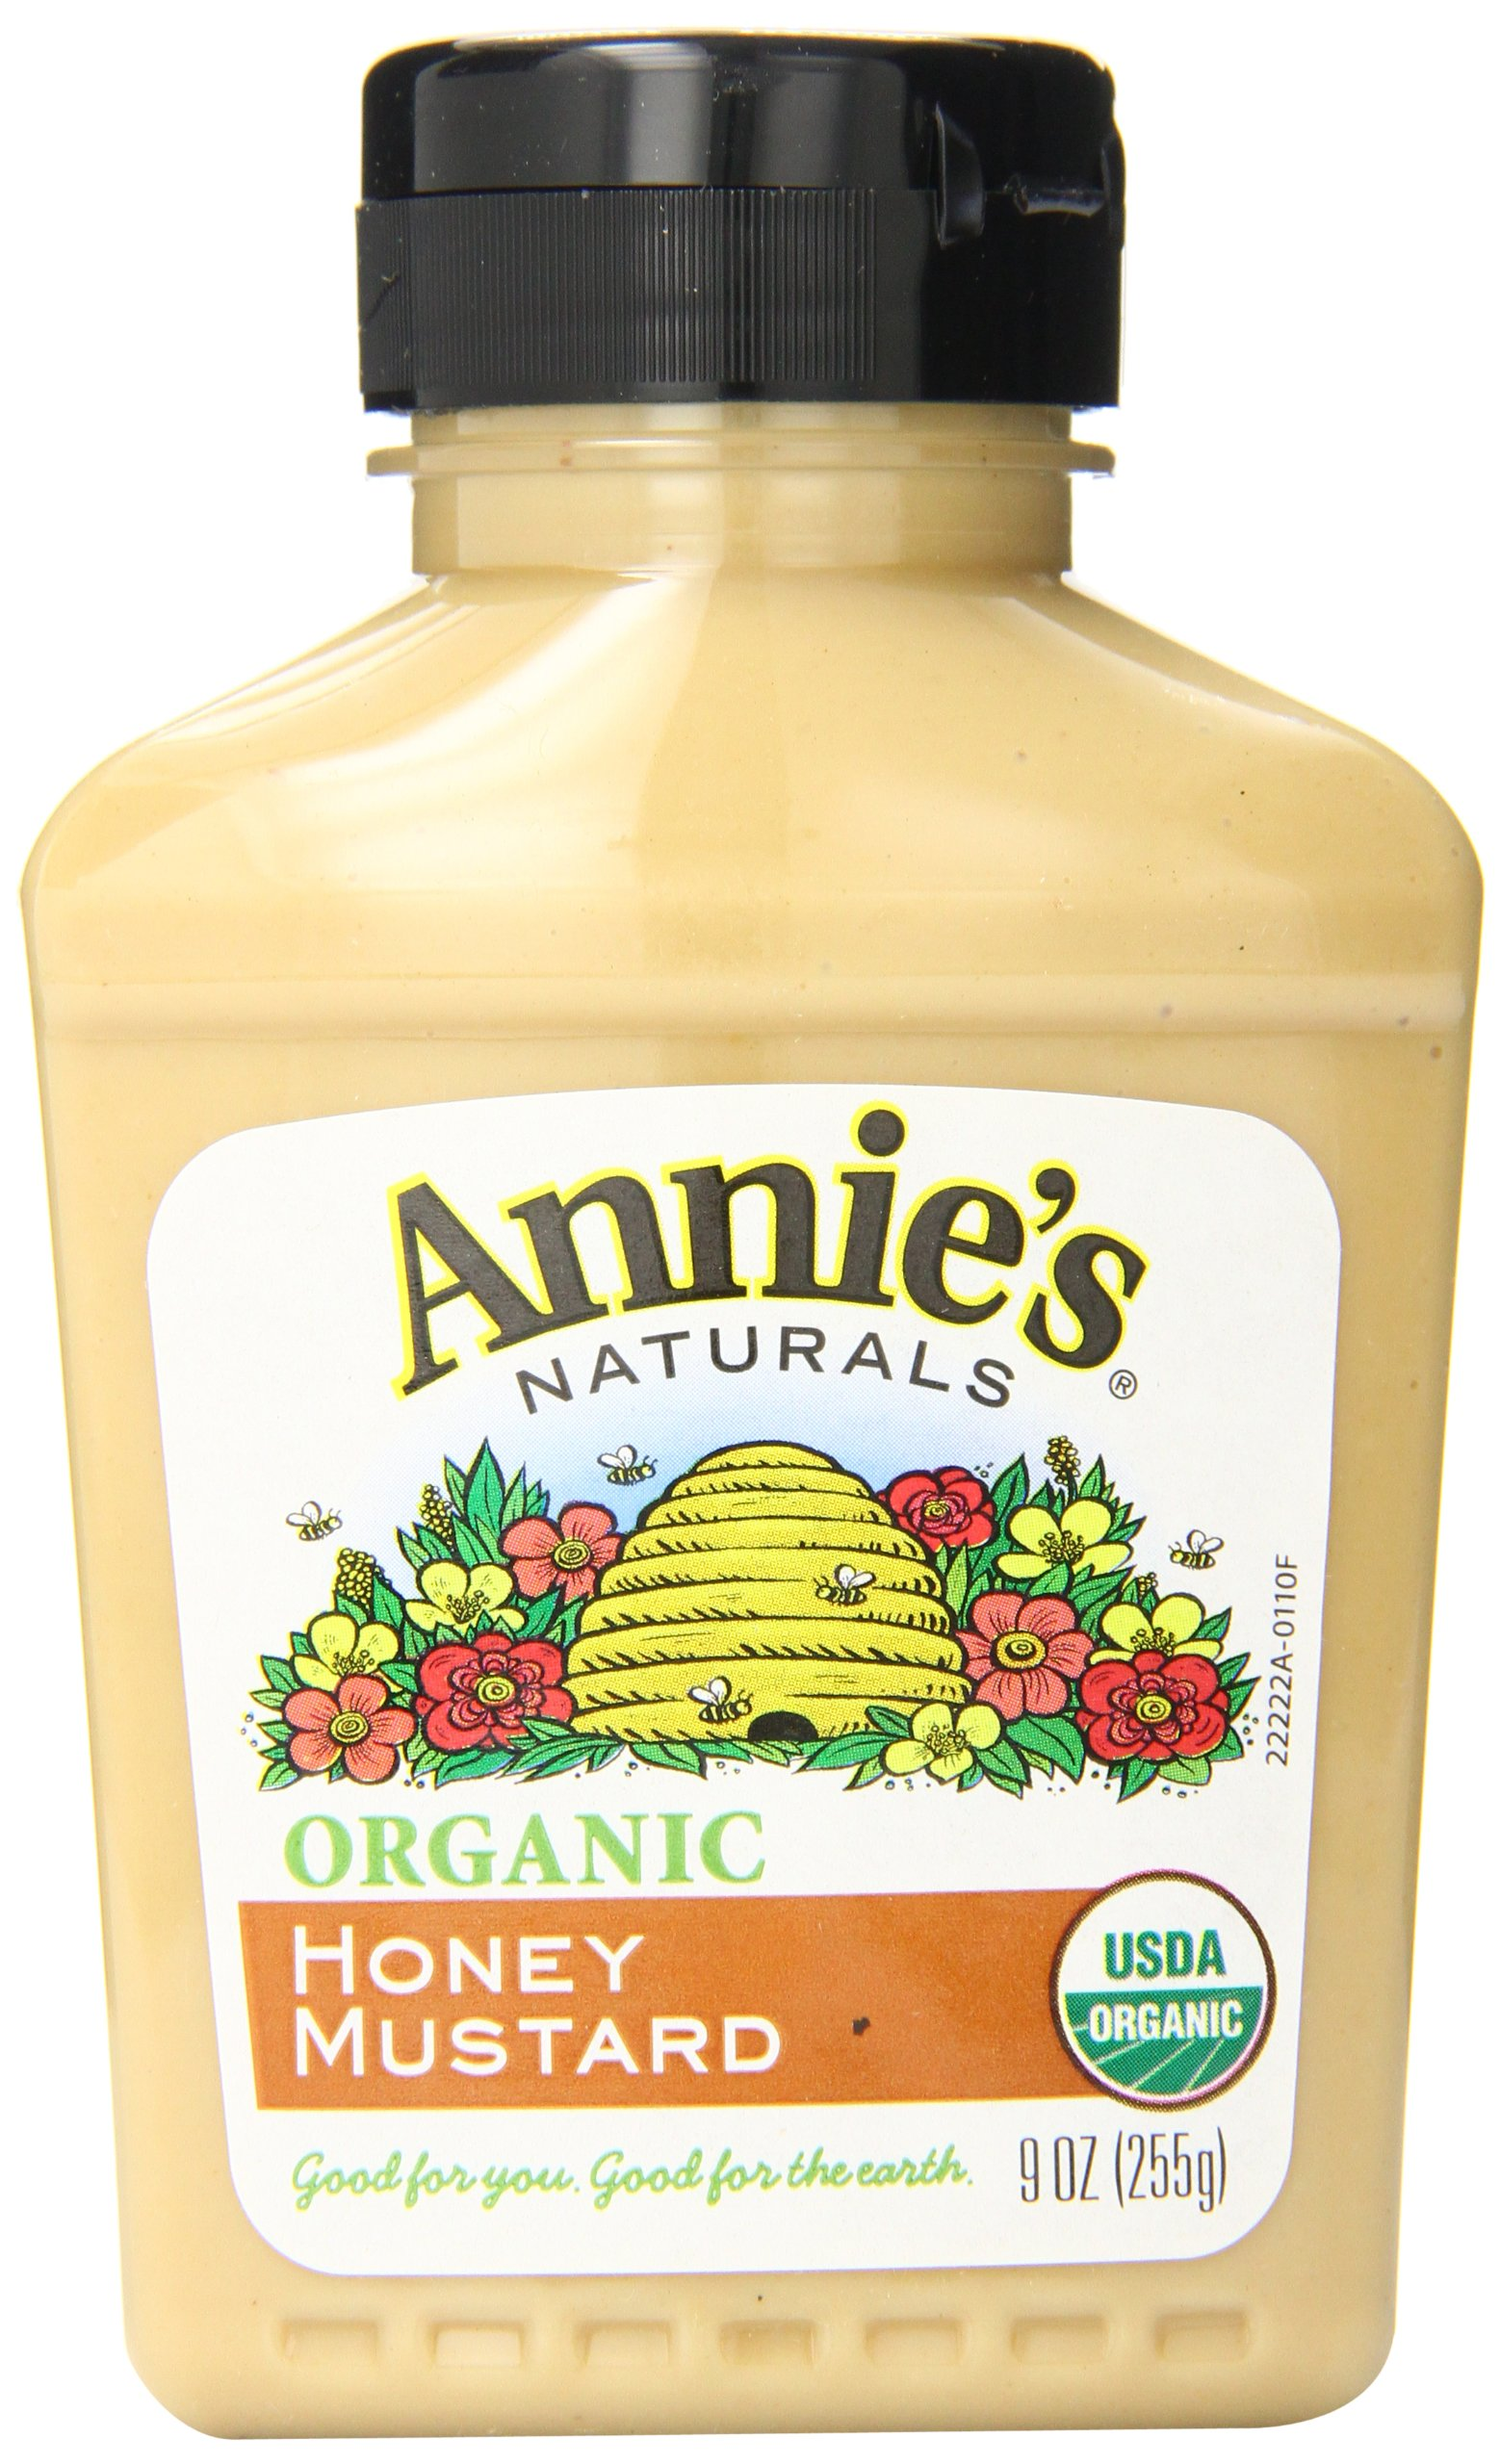 Annie's Naturals Organic Mustard, Honey, 9 Ounce (Pack of 12)